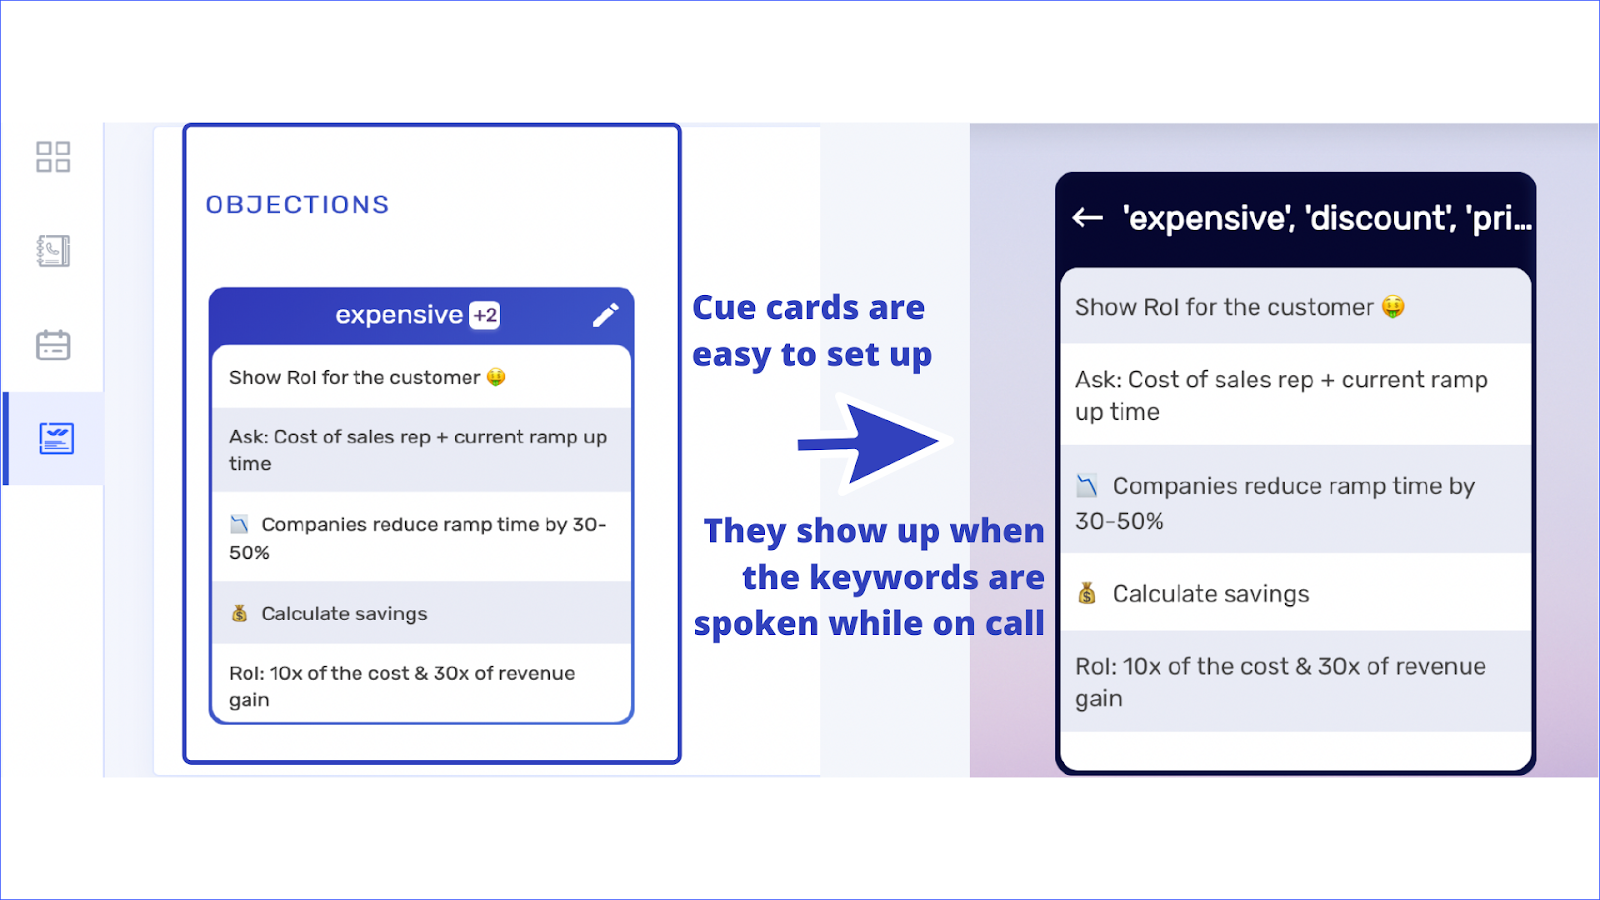 Get the right info at the right moment with cue cards!